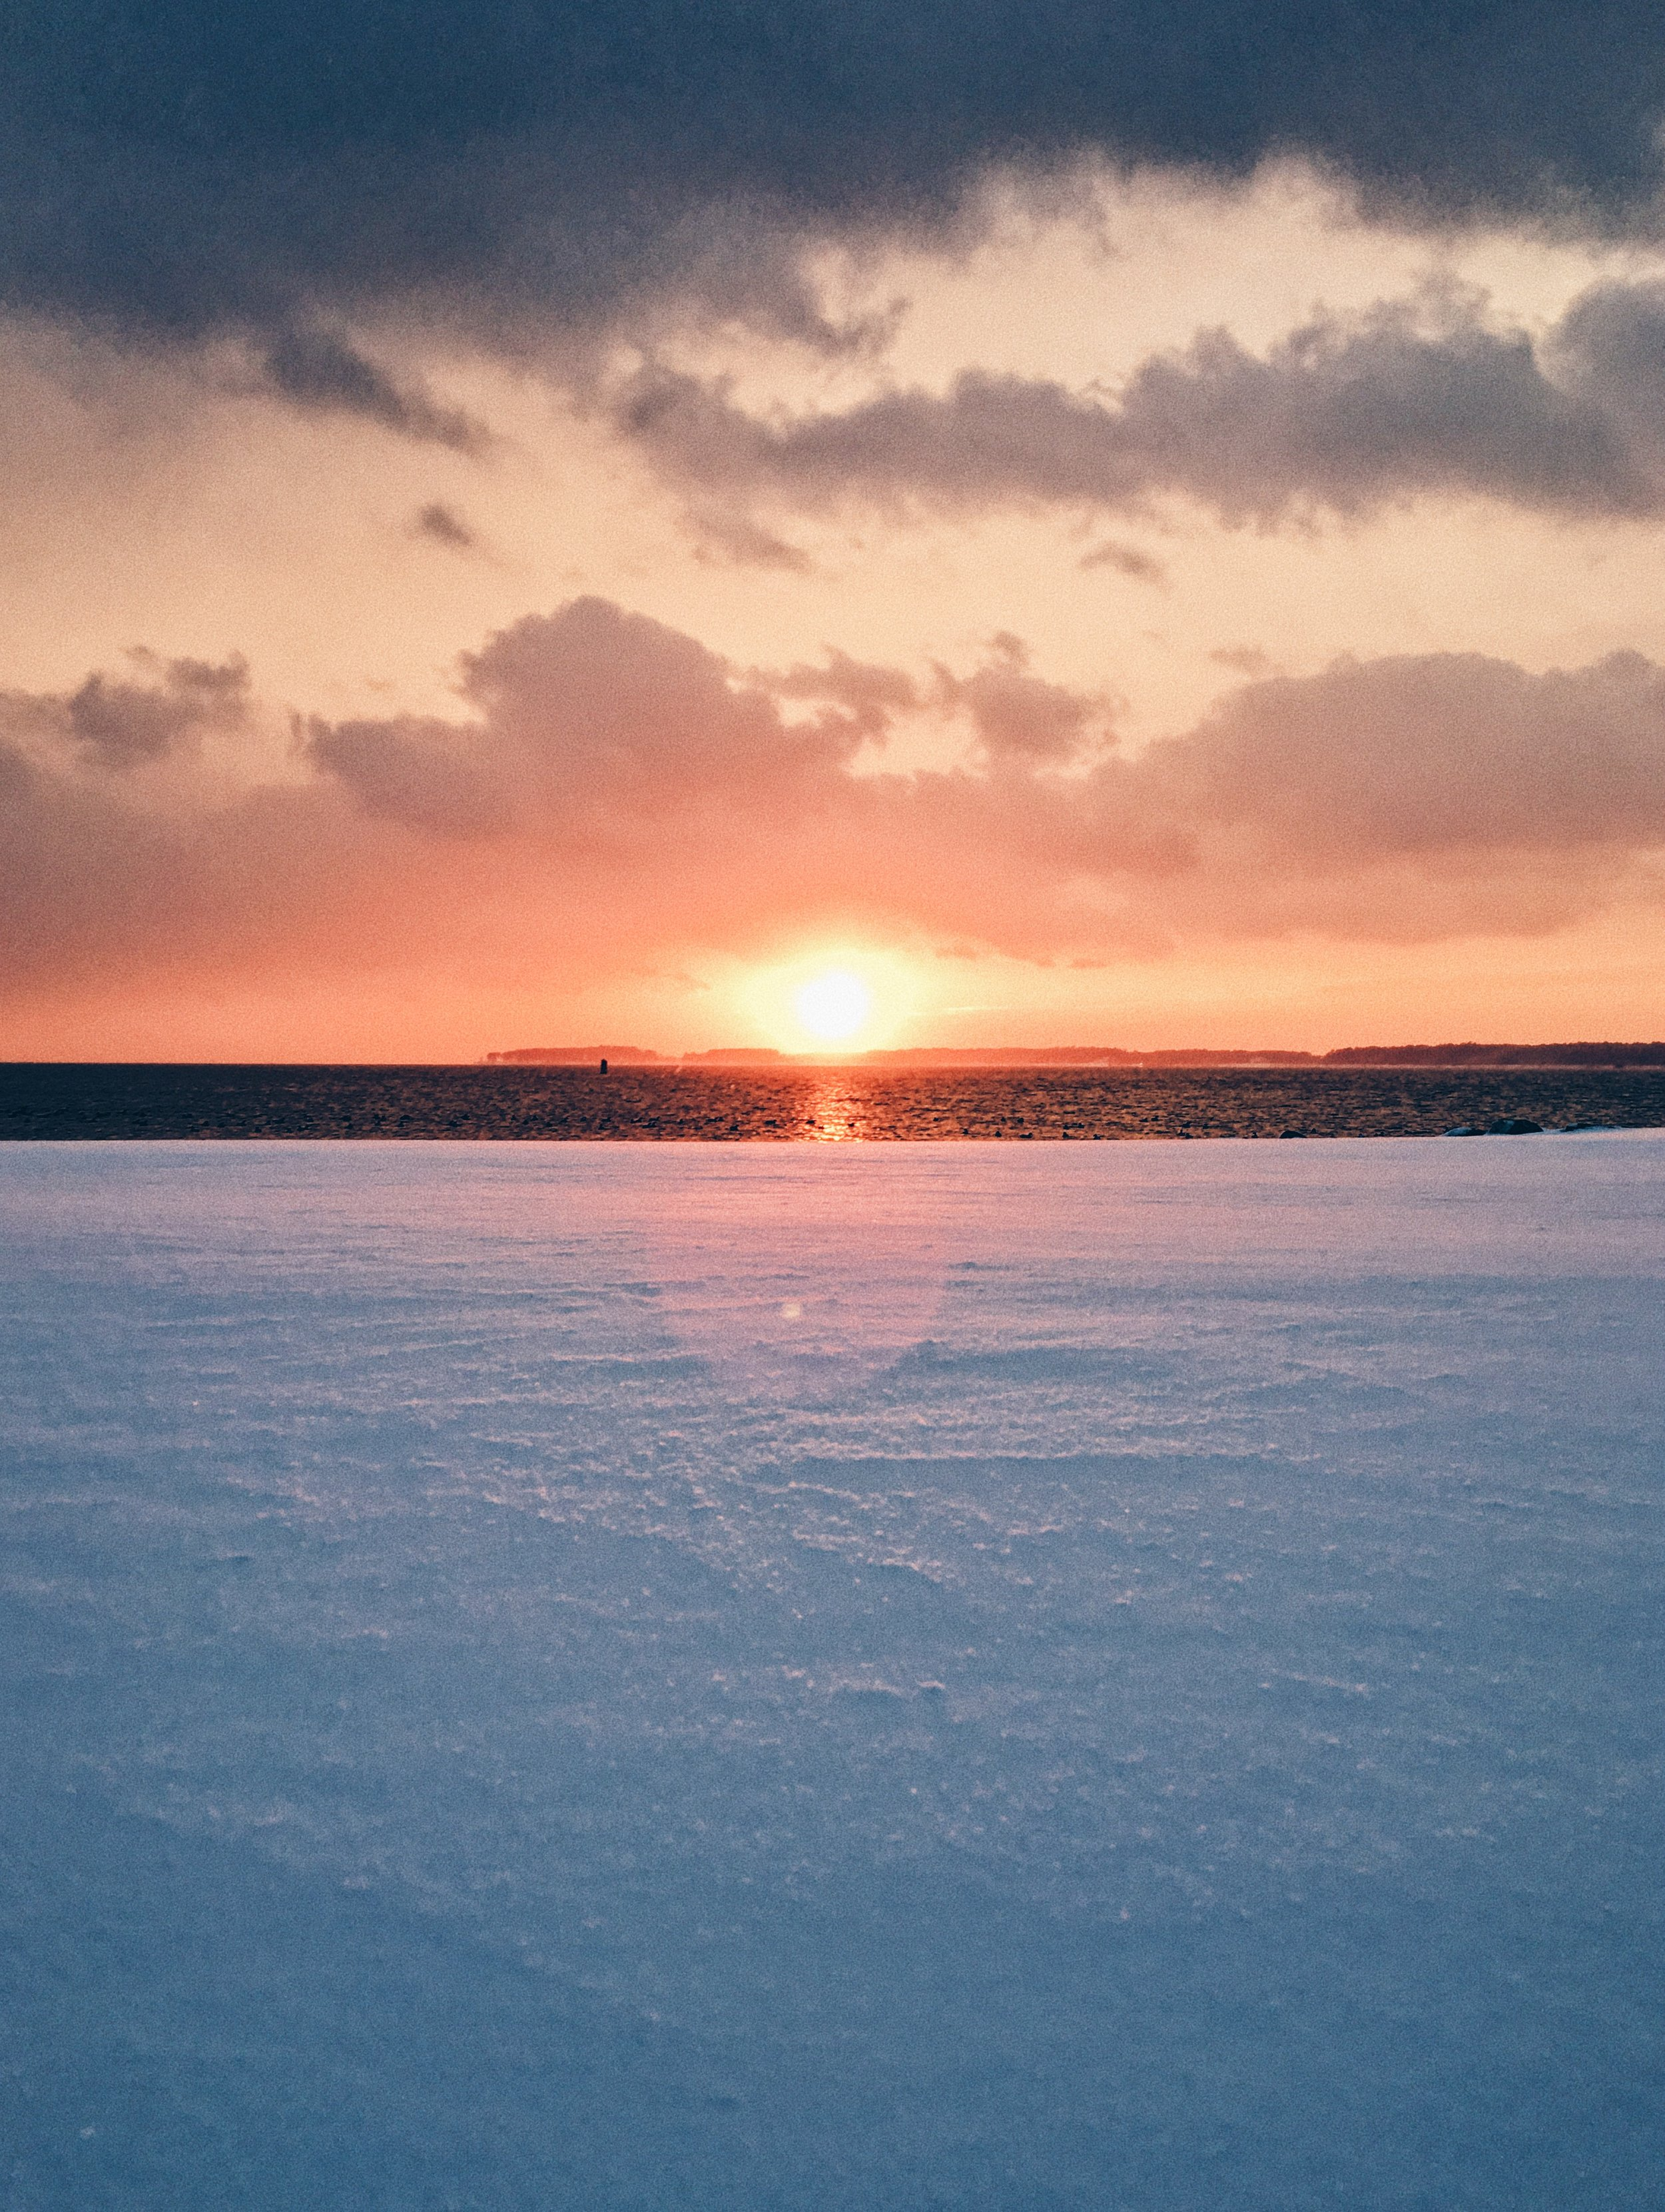 Sunset on the snow and water at Trinity Fellows Academy